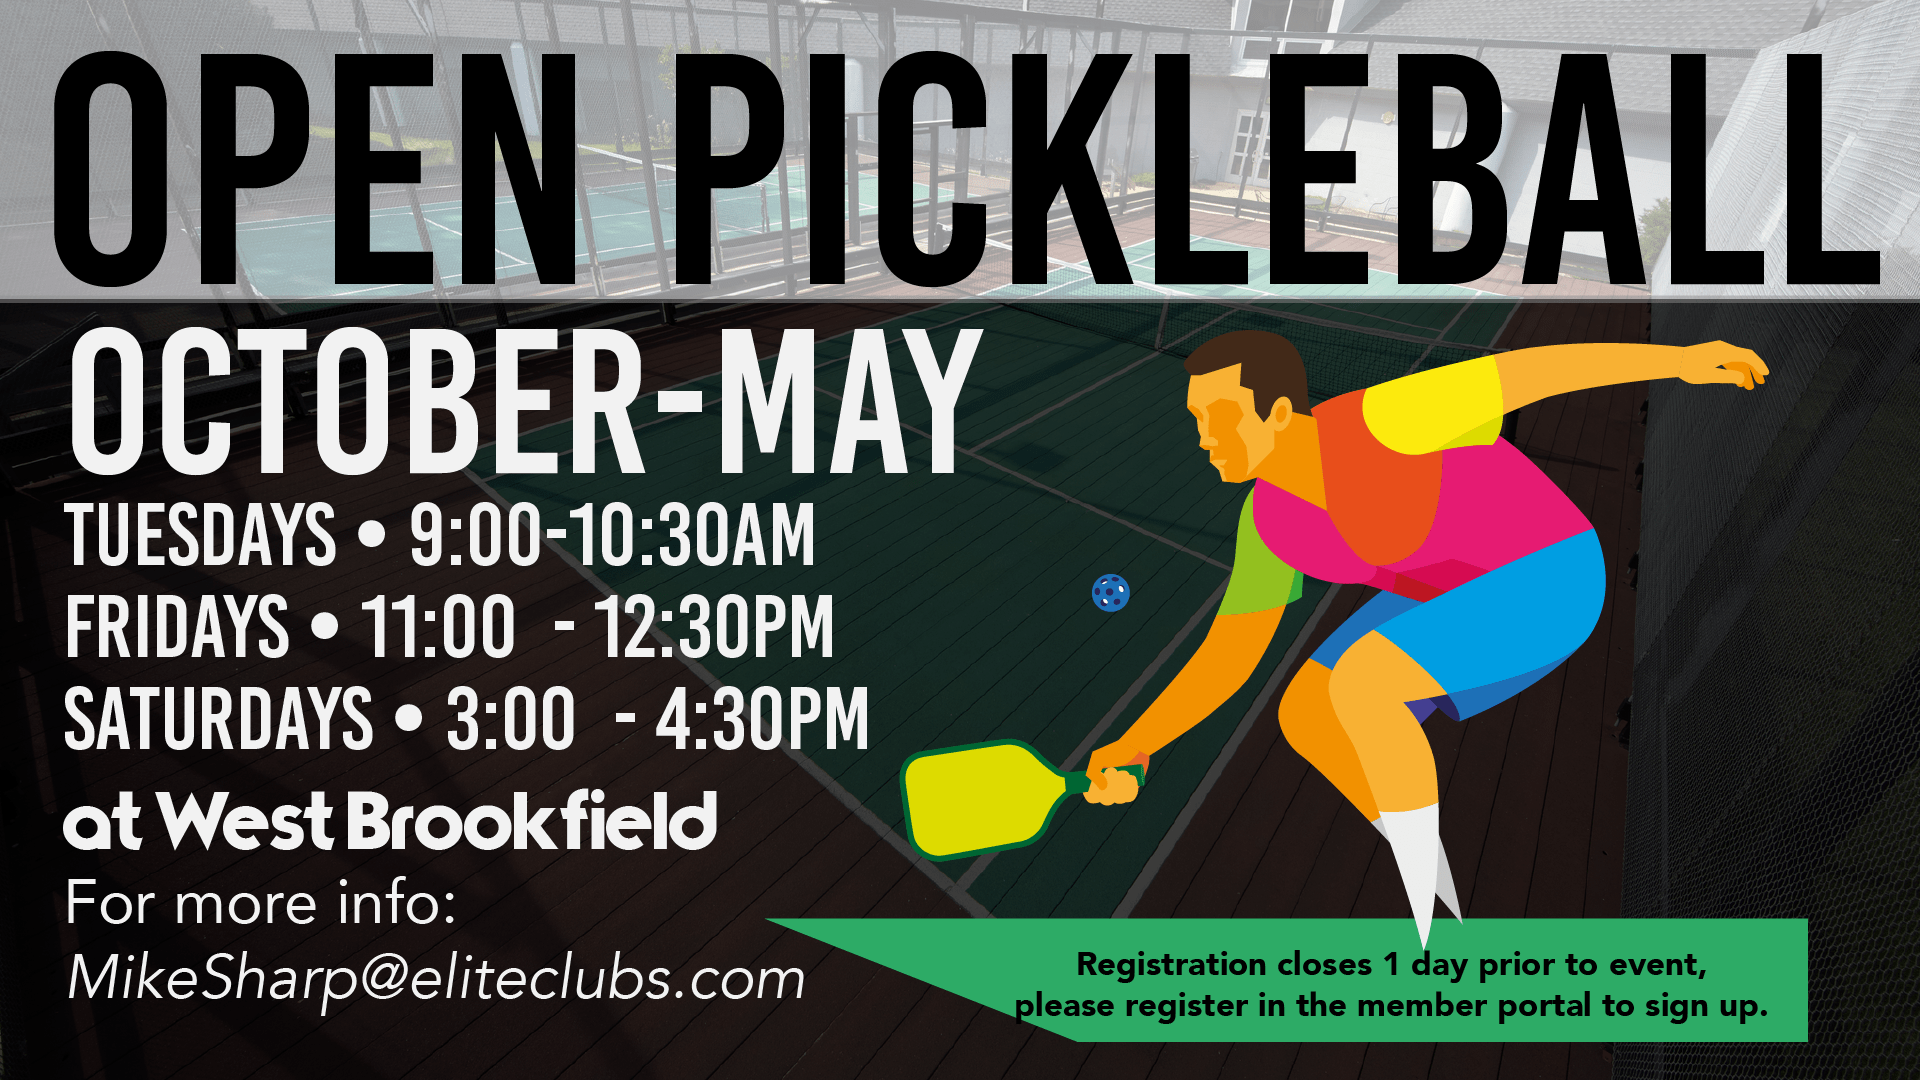 Open Pickleball - Elite West Brookfield - Fall 2020